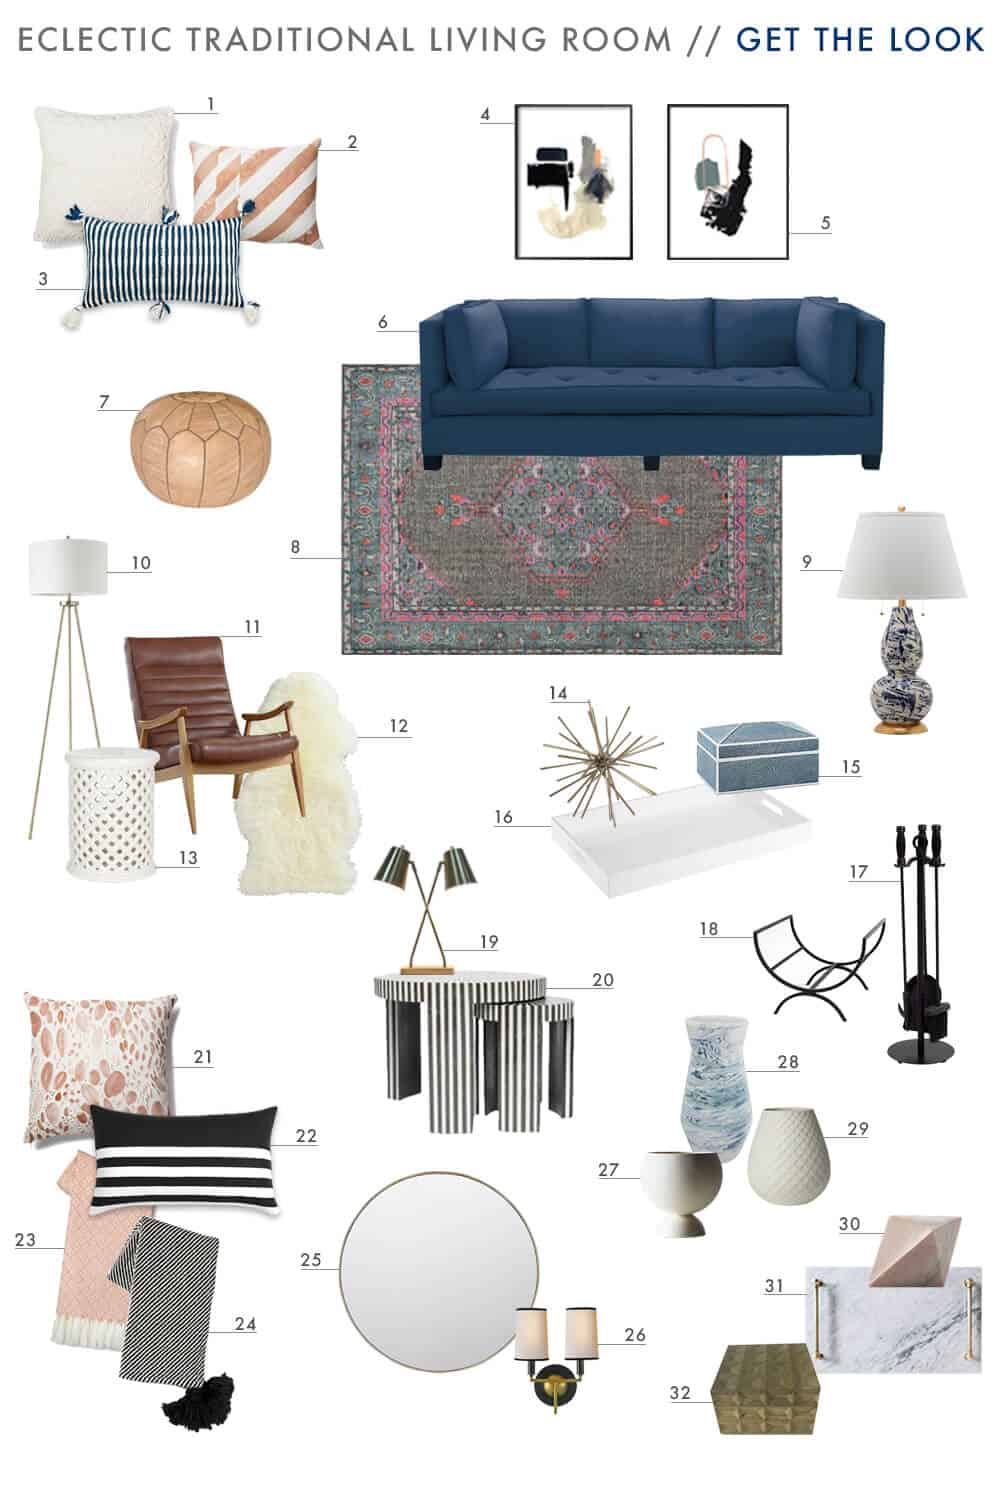 loreys-living-room-get-the-look-final